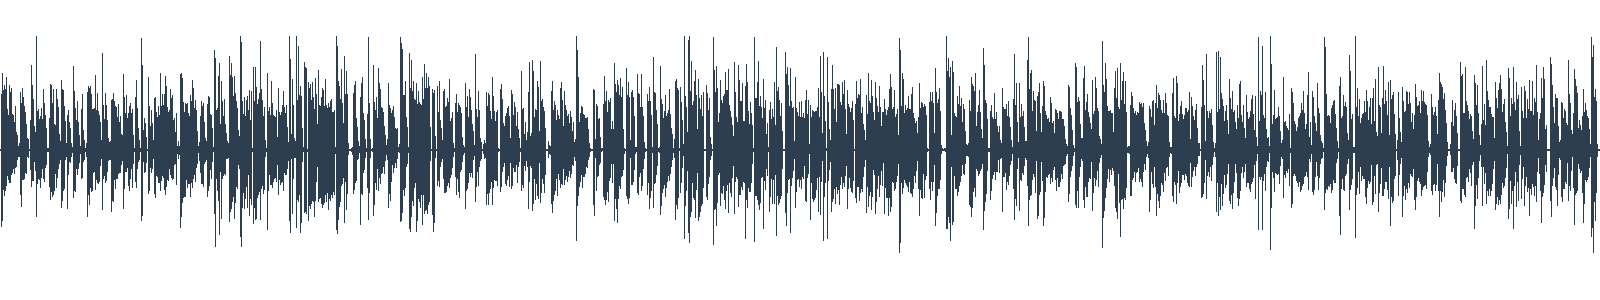 Rivers of Babylon waveform